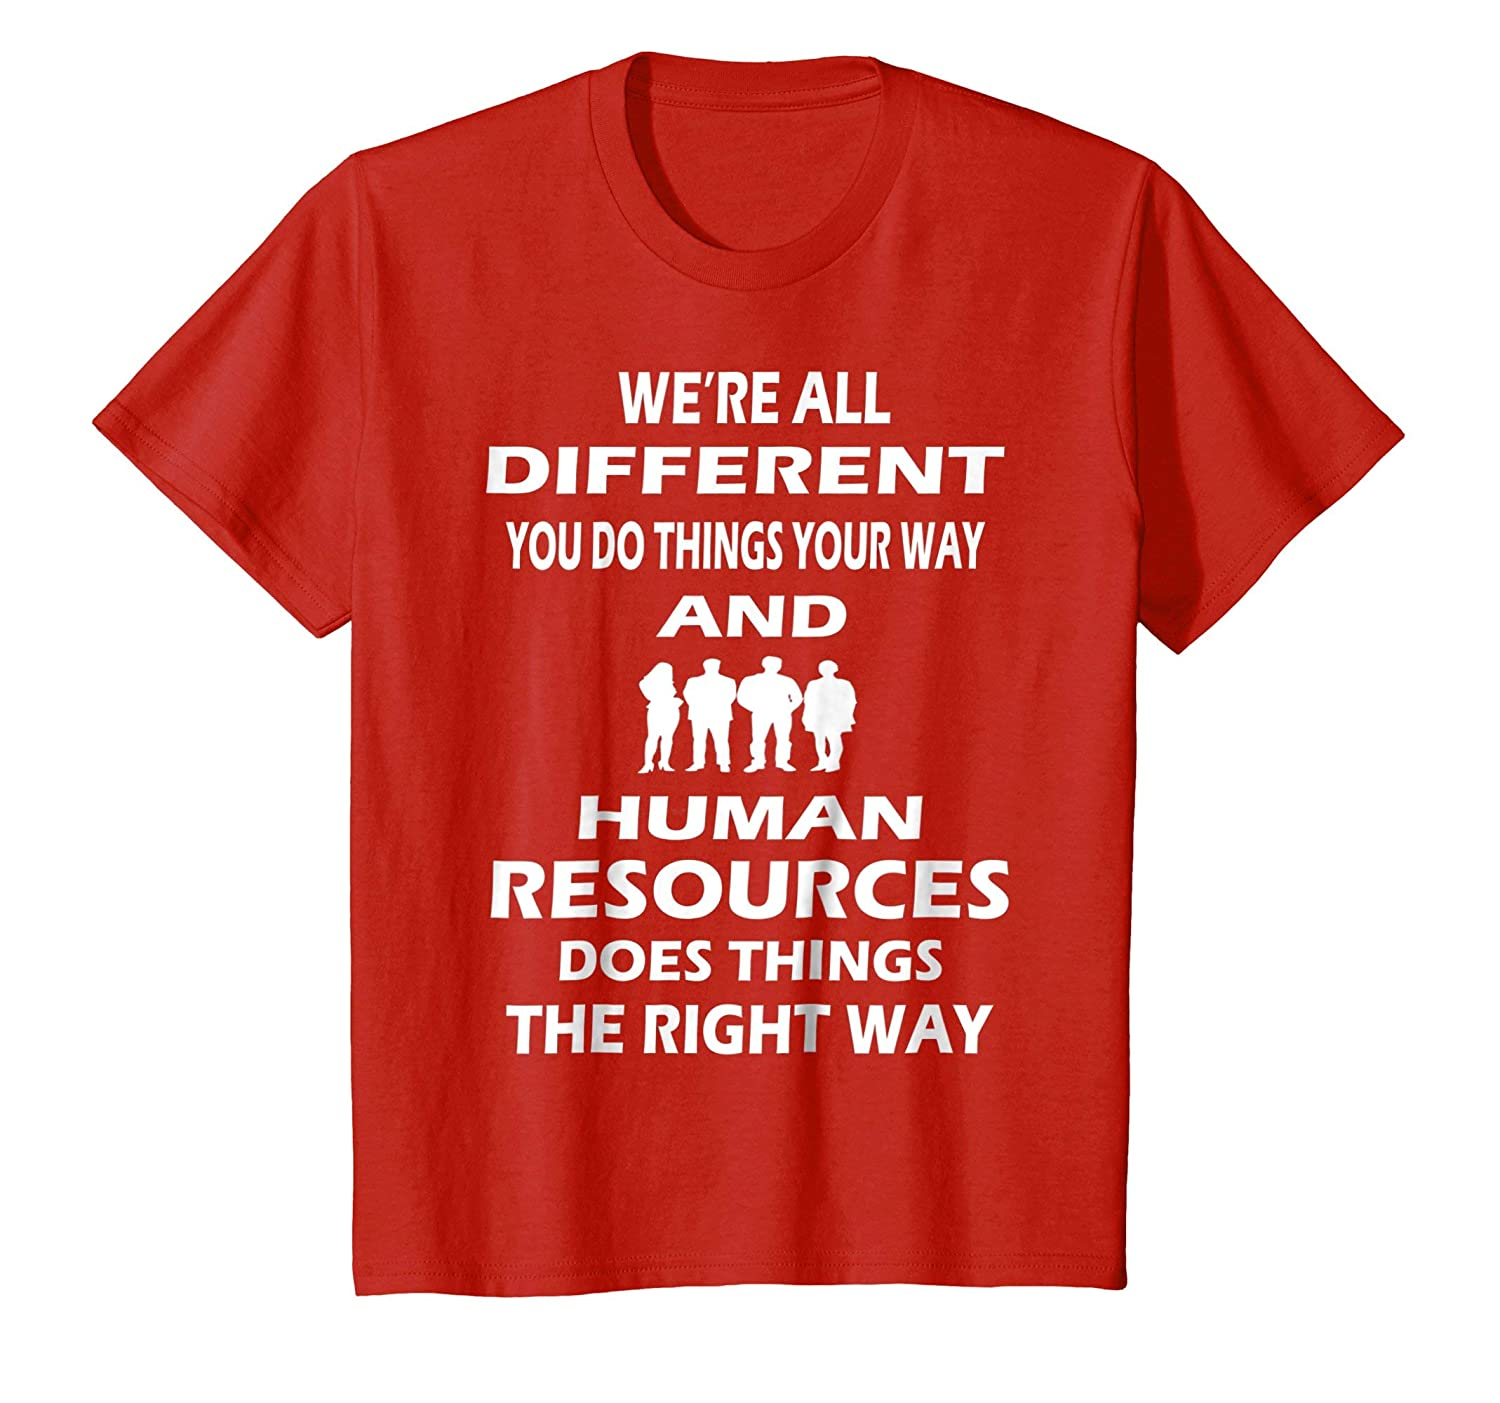 c0091fa1 Amazon.com: Human Resources Shirt Funny HR Department Gift Shirt Idea:  Clothing